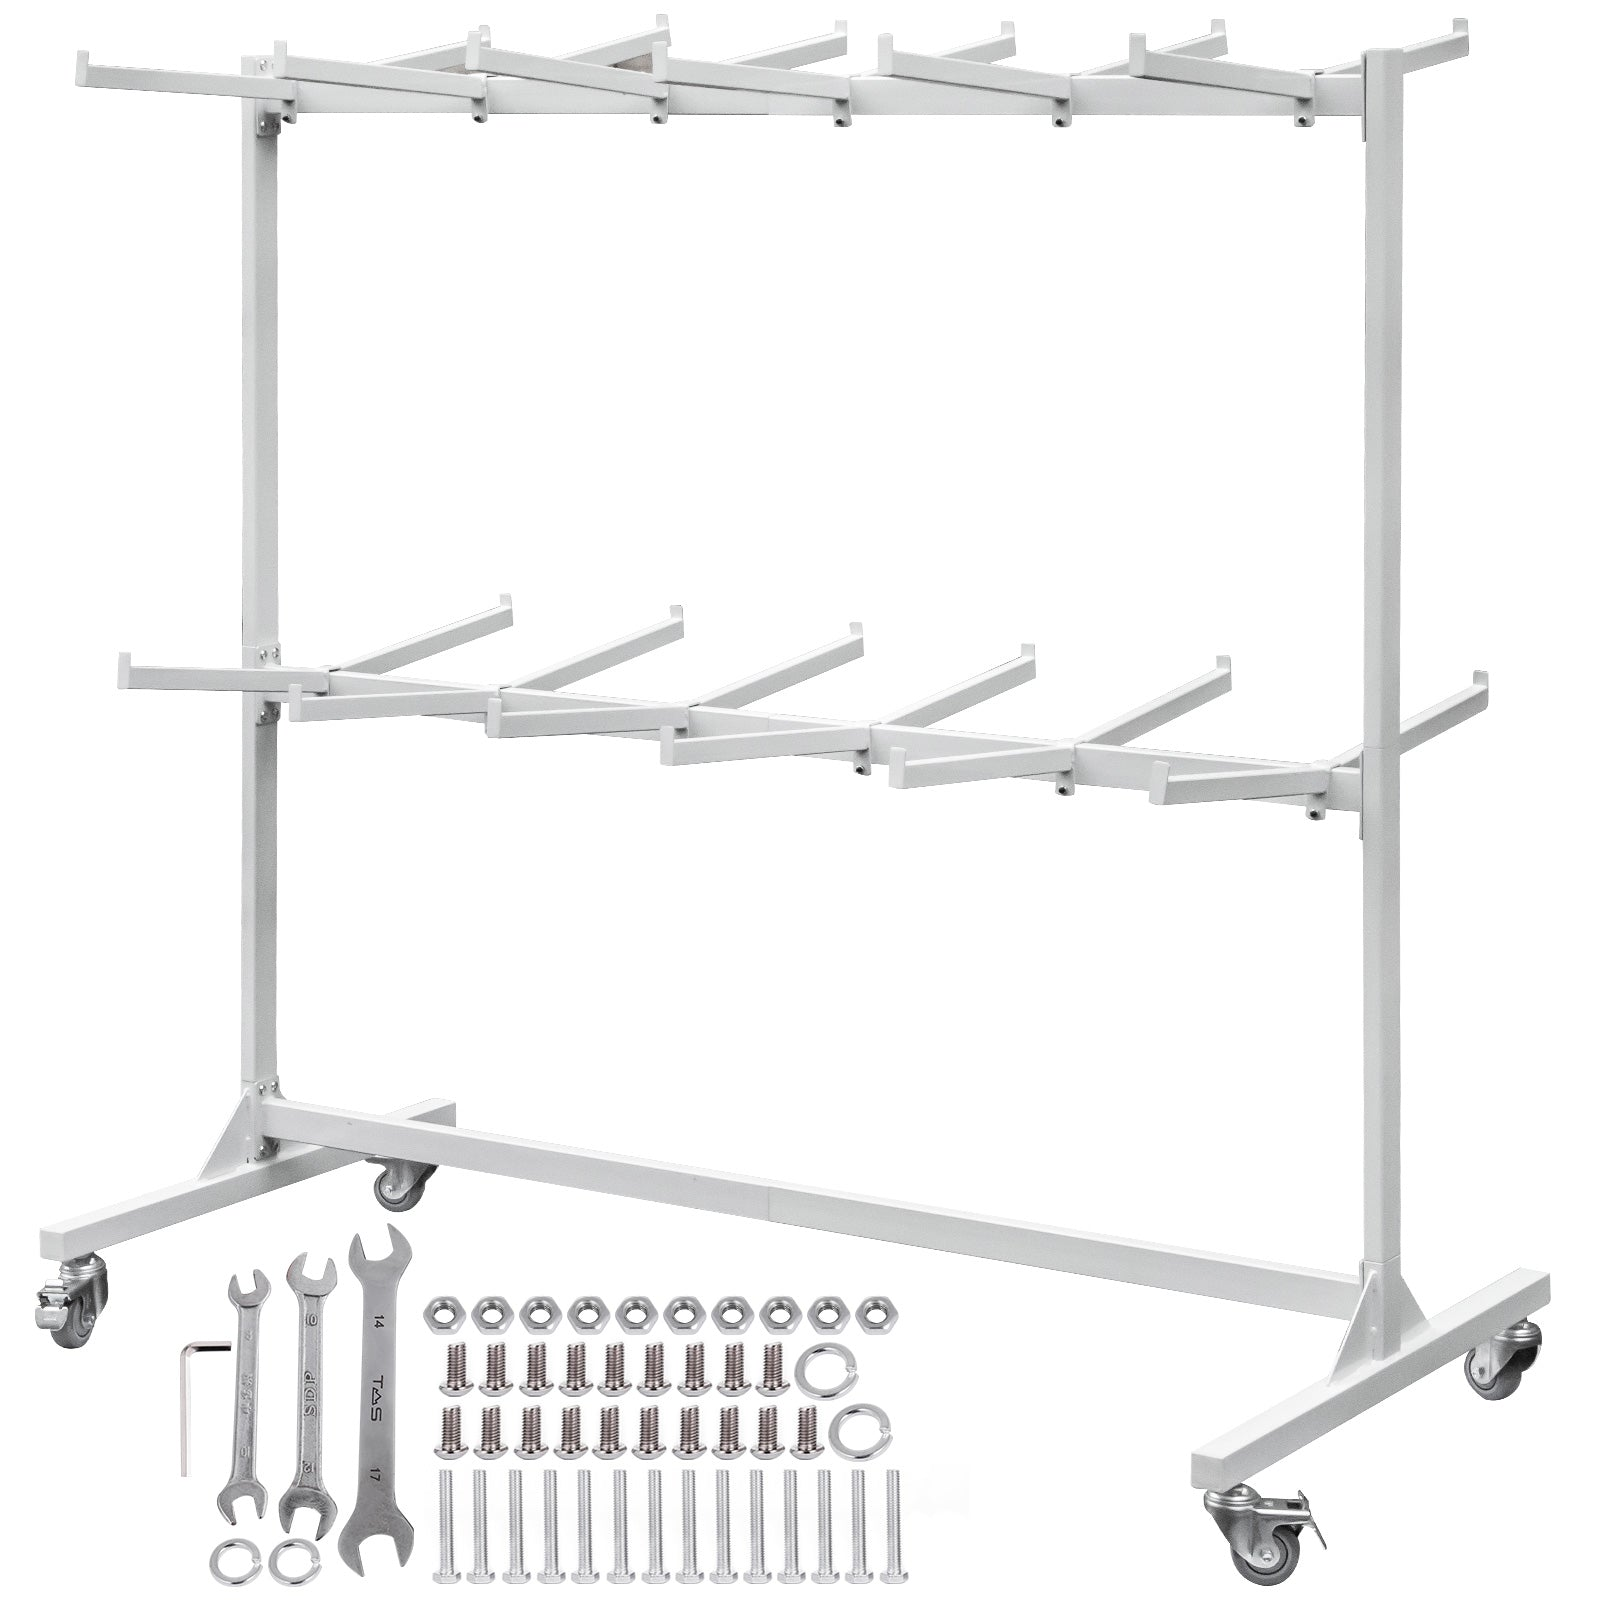 Folding Chair Cart Folding Chair Rack 2-layers Chair Rack For 84 Chairs Storage